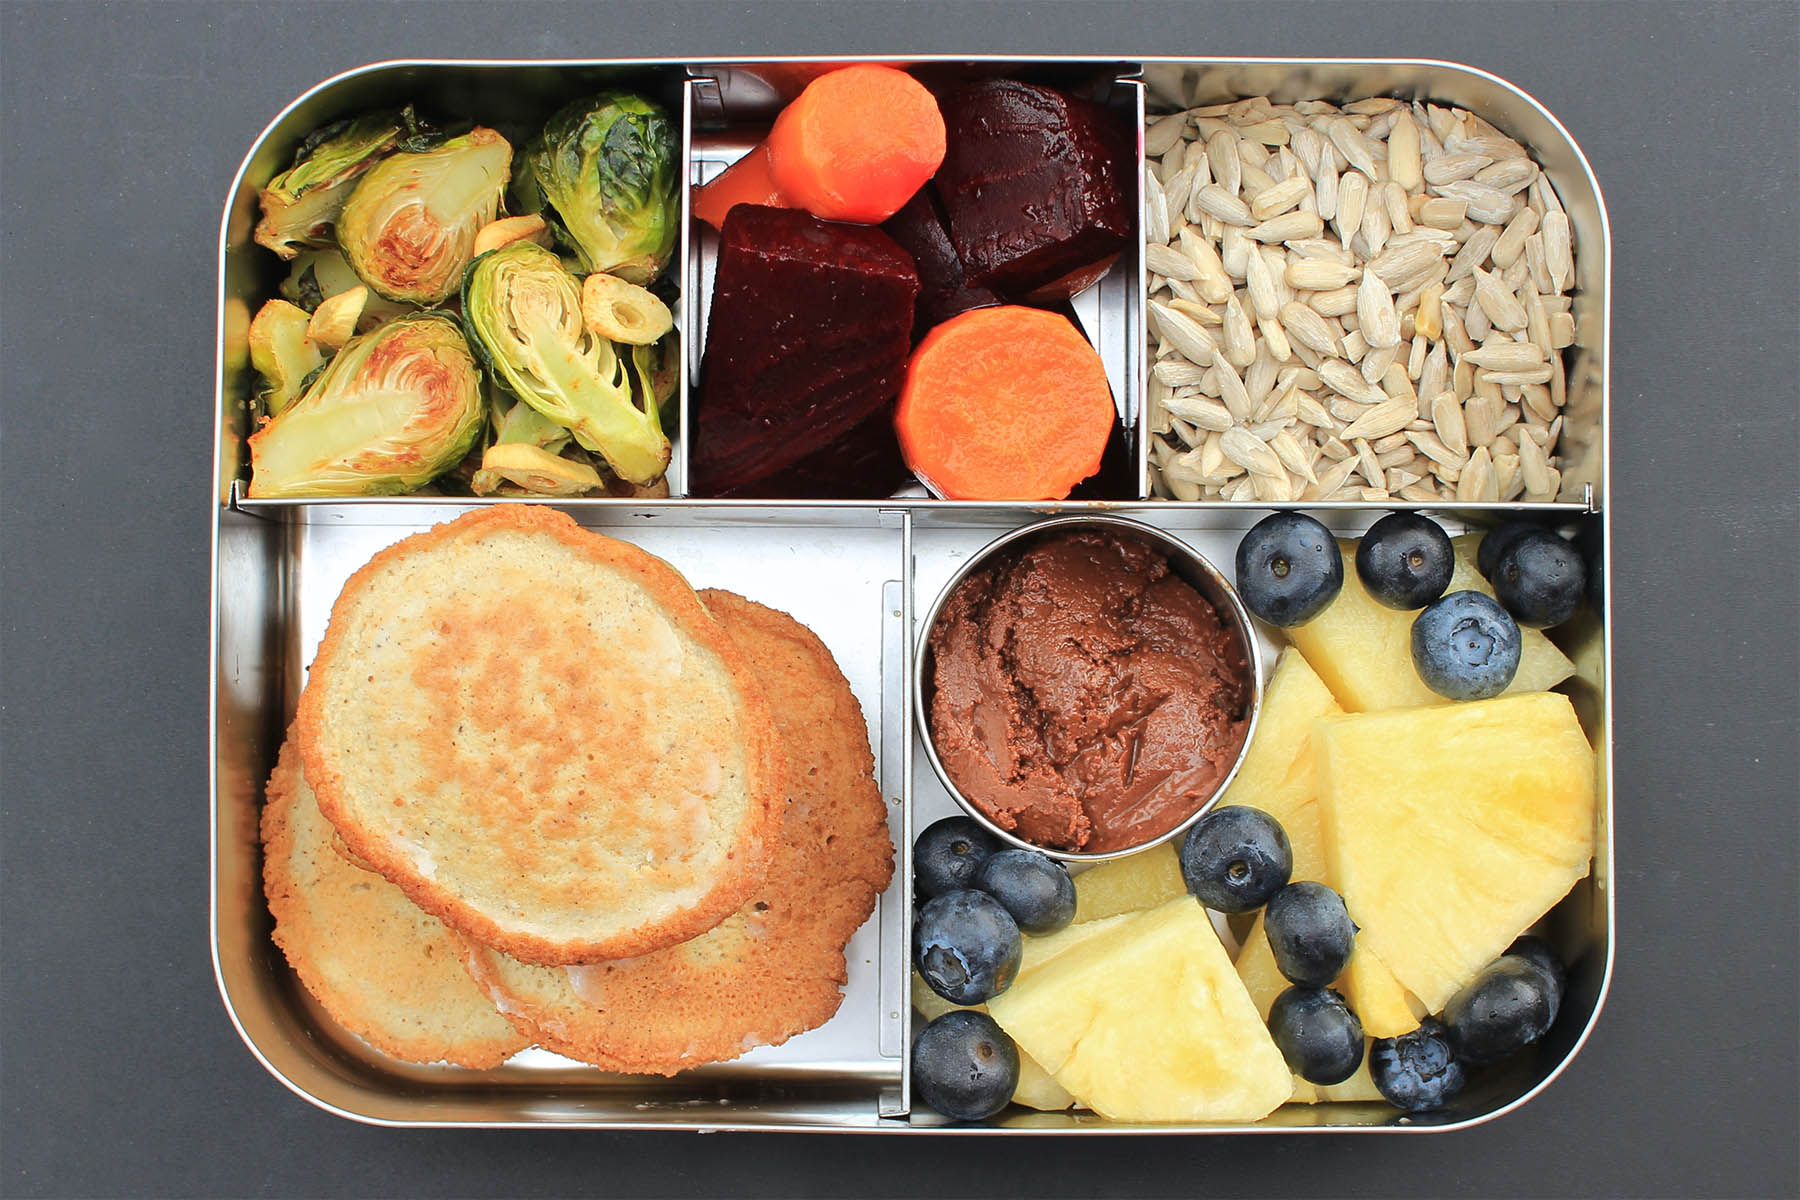 Pancake Lunch Bento Box